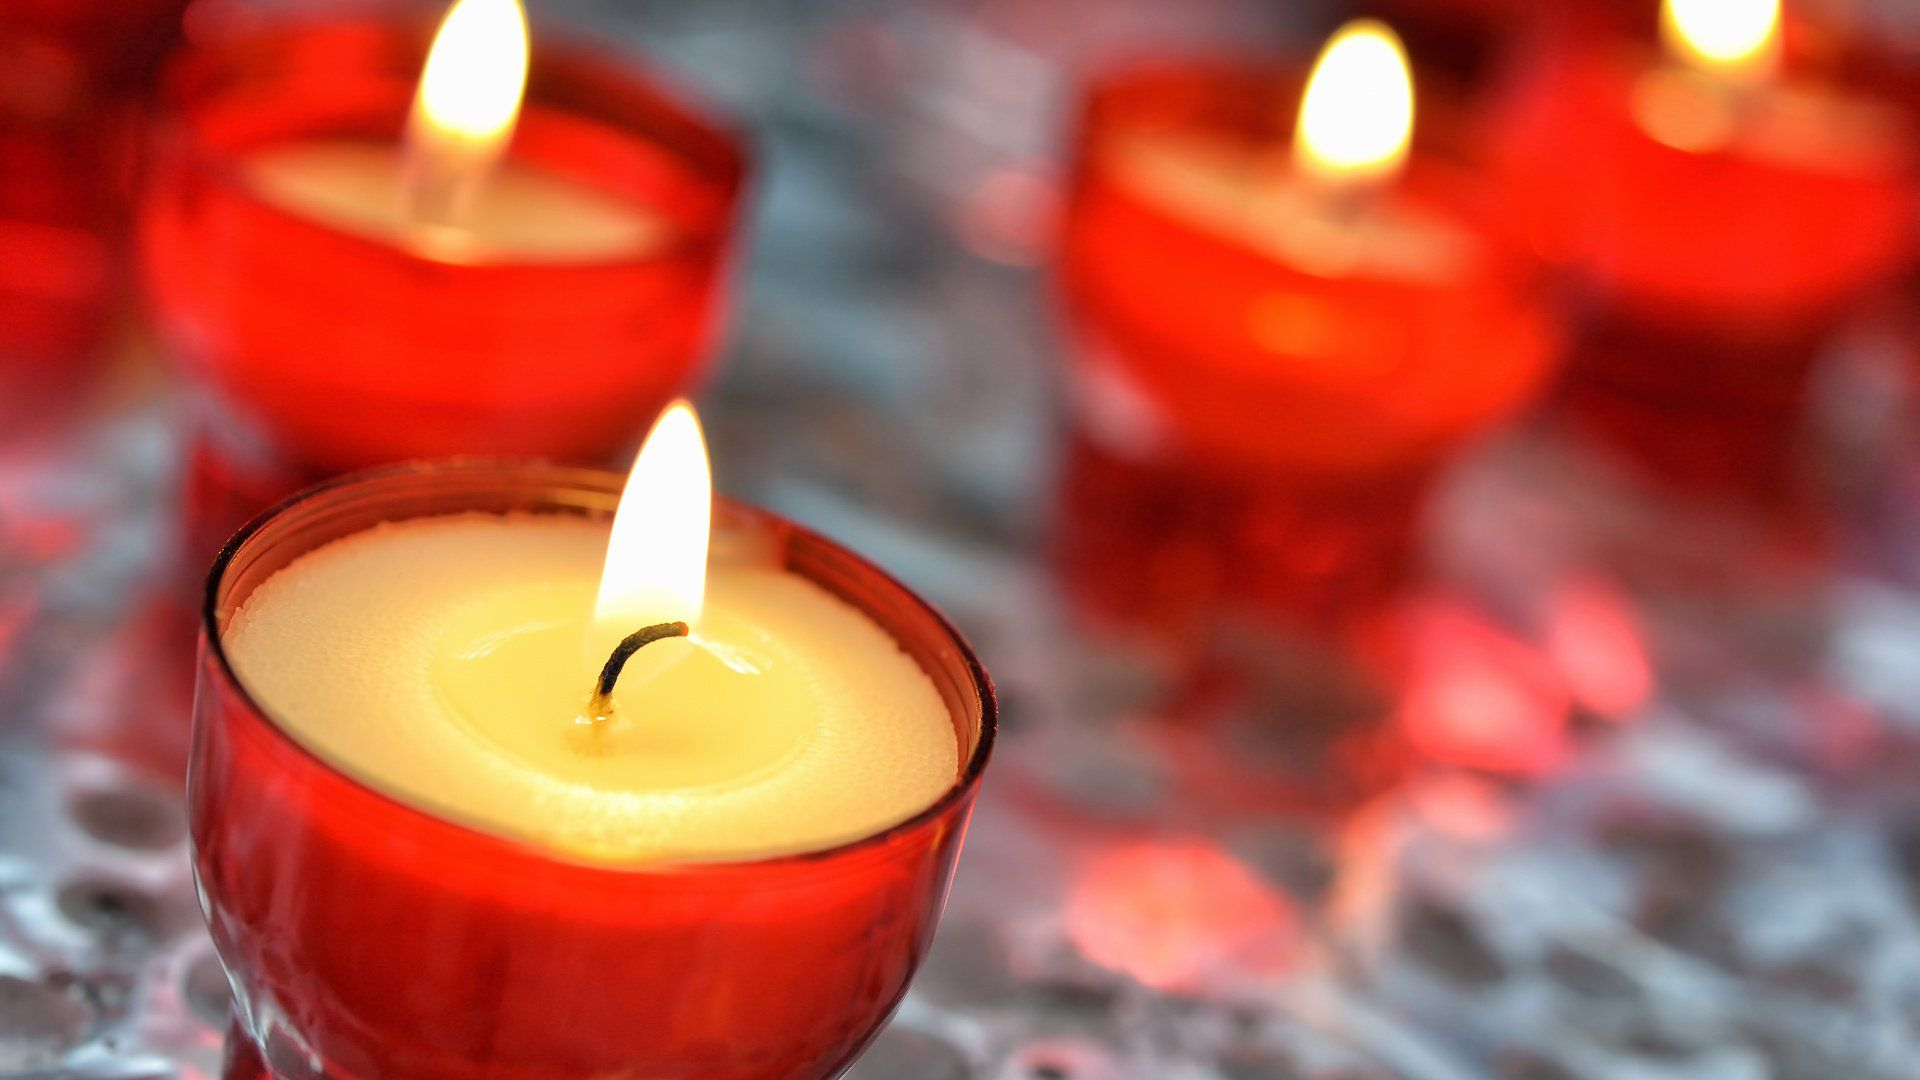 Candle Wallpaper Image